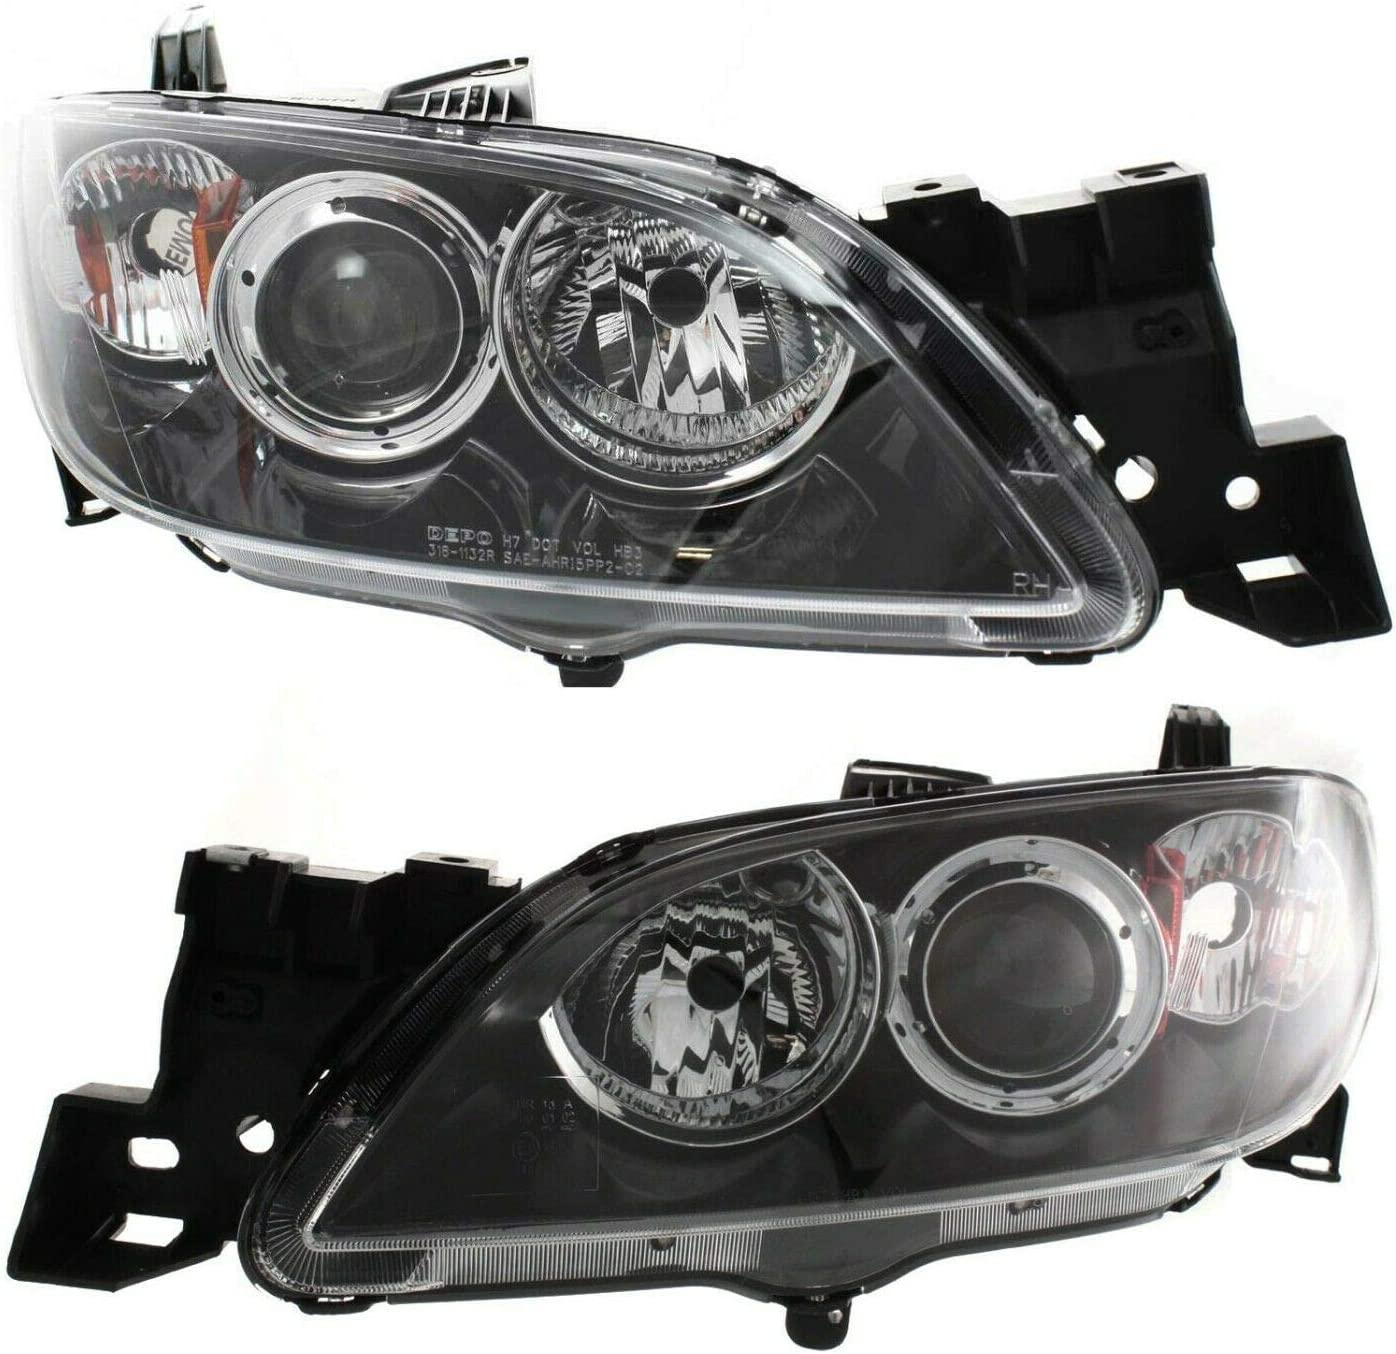 VioletLisa New Max 54% OFF Max 44% OFF Replacements Headlight Set Sed with Compatible GS